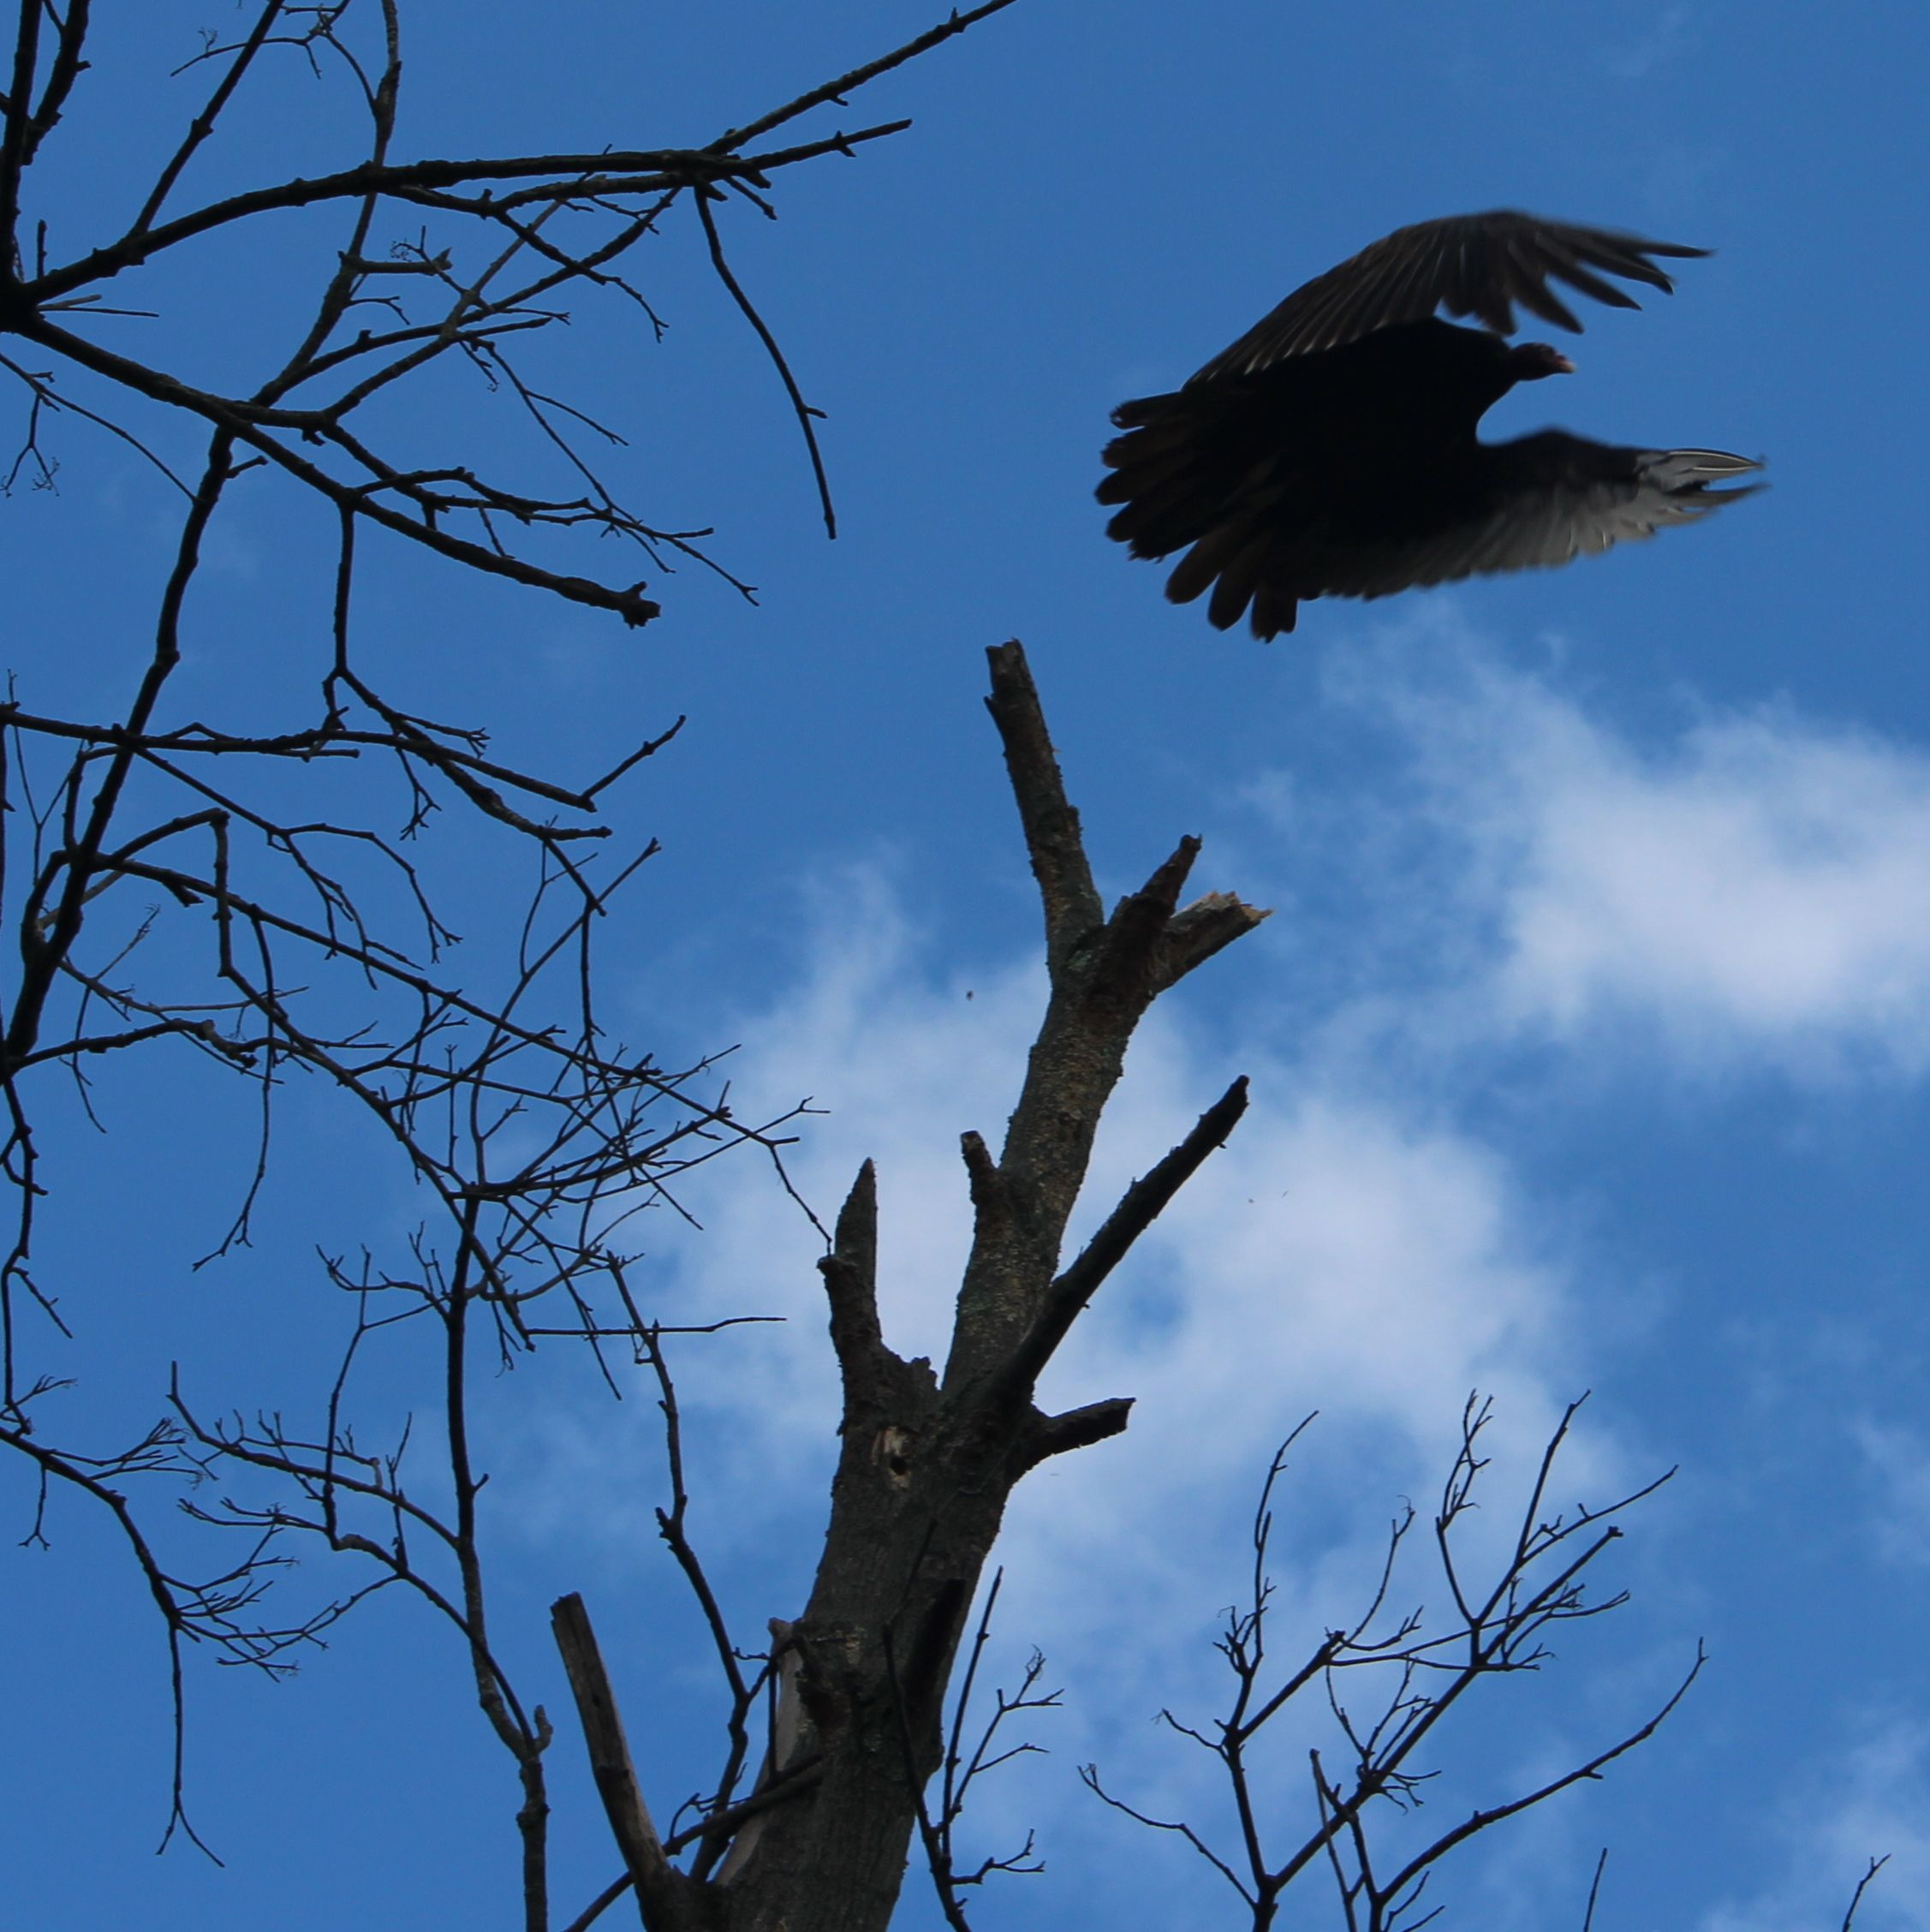 turkey vulture taking off from dead Red Maple tree